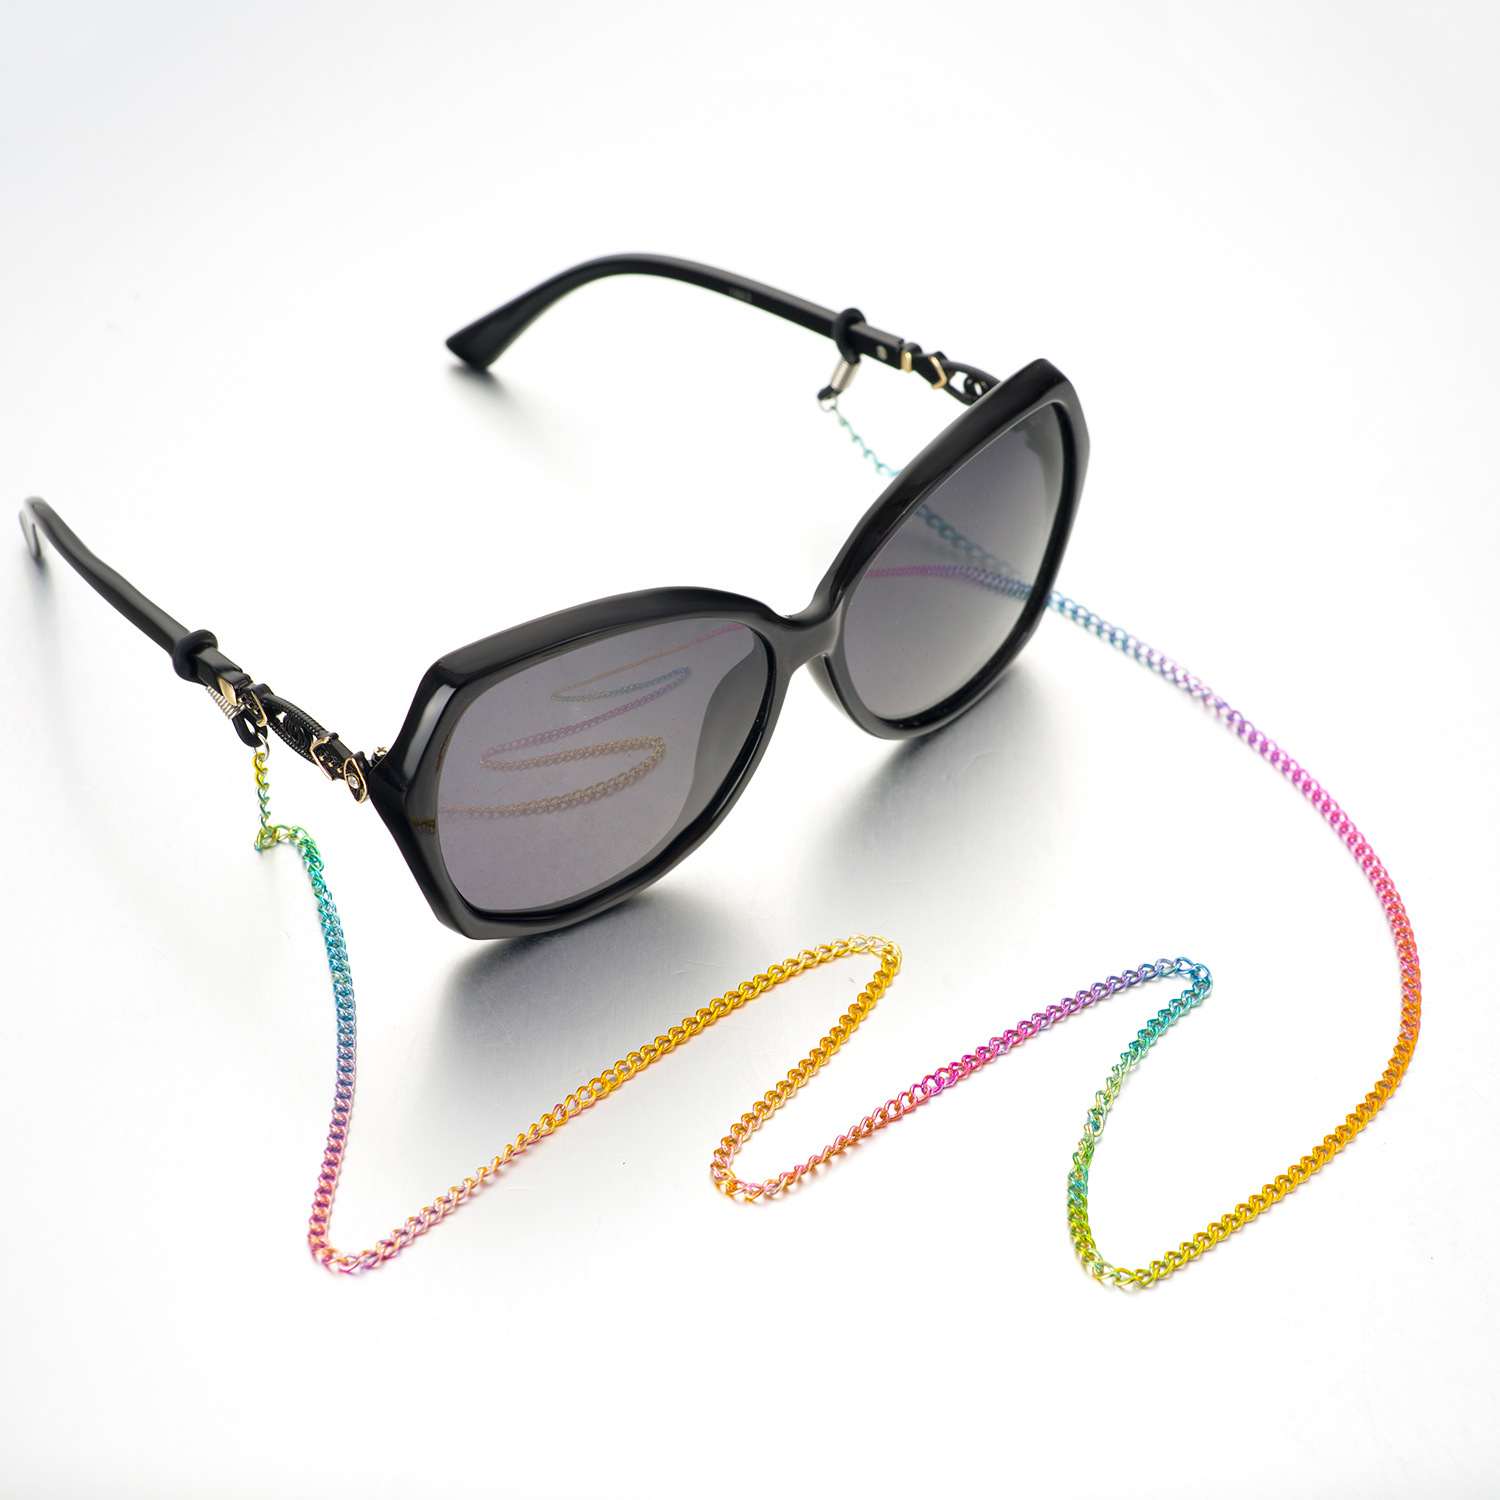 Fashion Colorful Copper Chain Eyeglass Strap Reading Glasses Spectacles Sunglasses Eyewear Eyeglass Chain Neck Cord Strap Rope